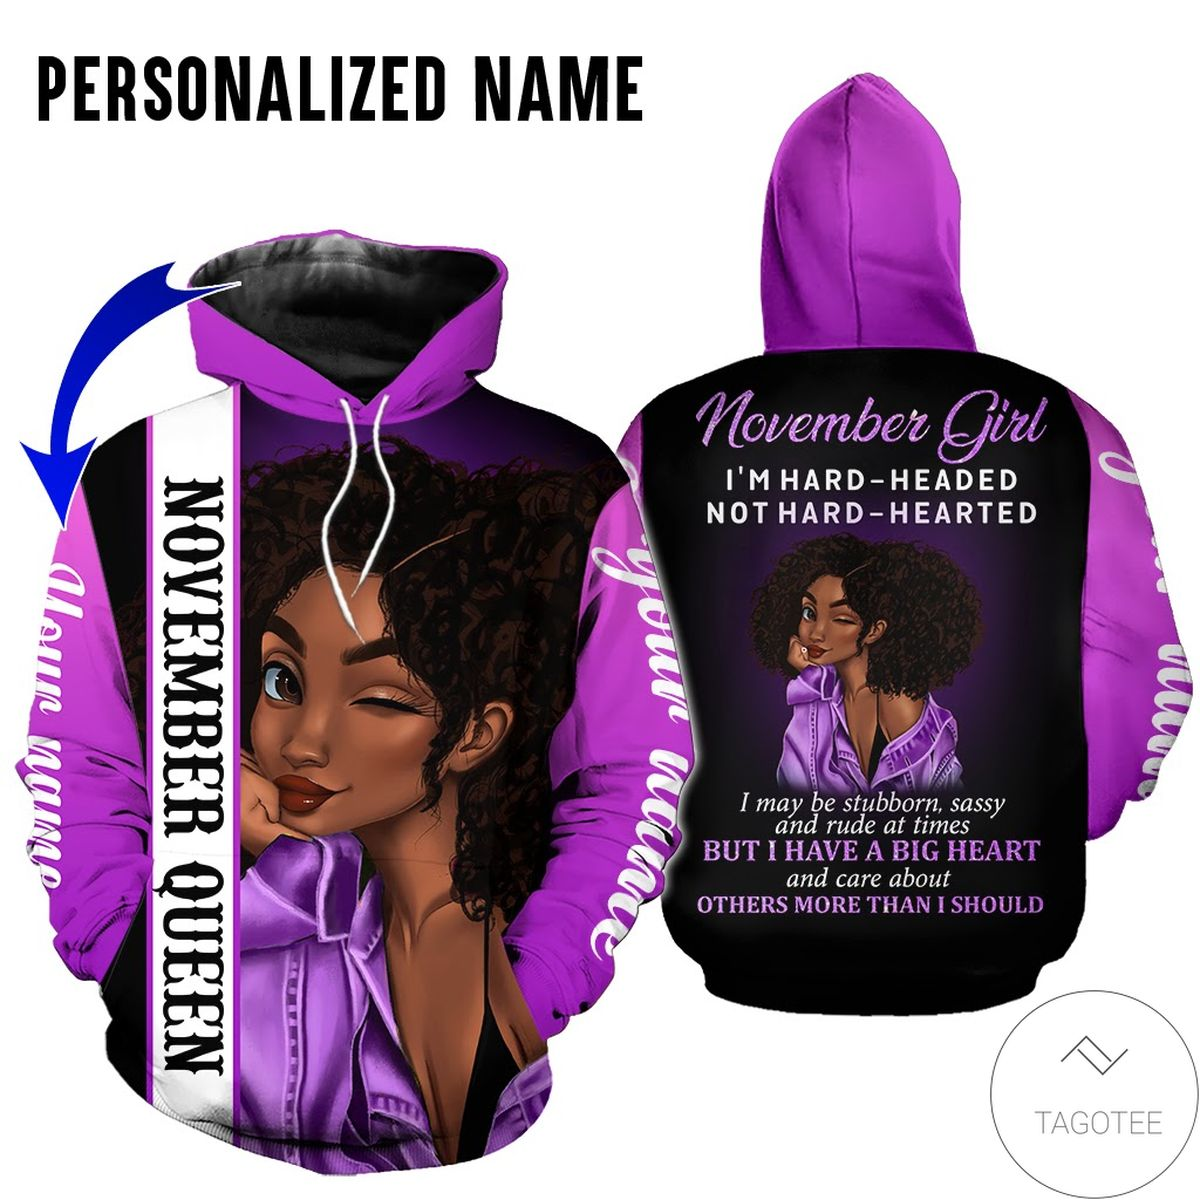 Real Personalized Name November Girl Hard Headed Not Hard Hearted All Over Print Hoodie